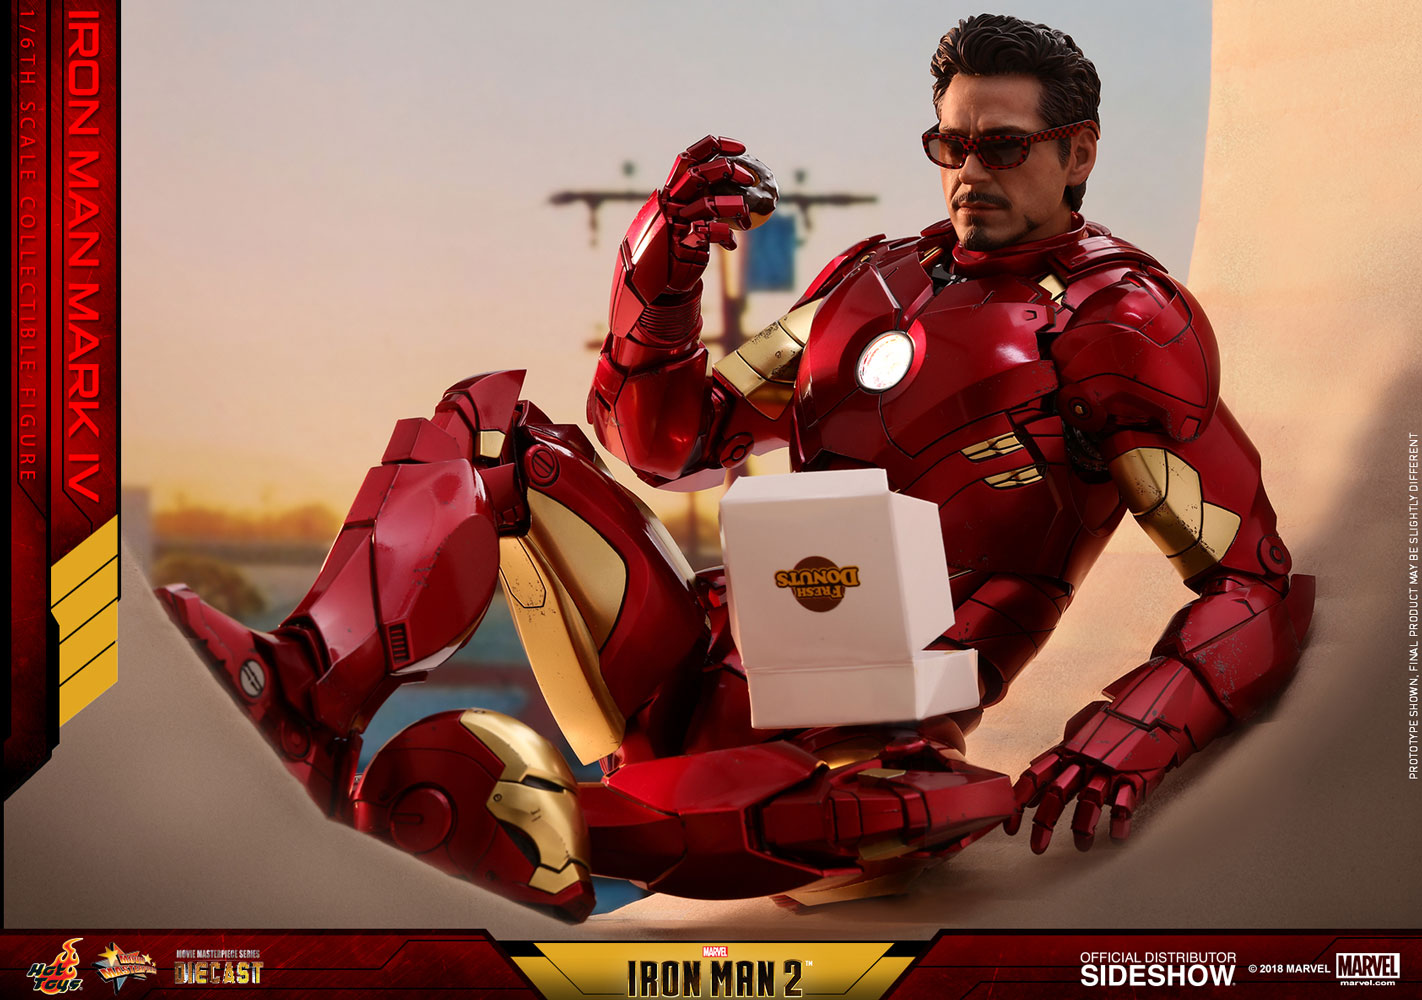 Marvel Iron Man Mark IV Sixth Scale Figure by Hot Toys   Sideshow         Hot Toys Iron Man Mark IV Sixth Scale Figure